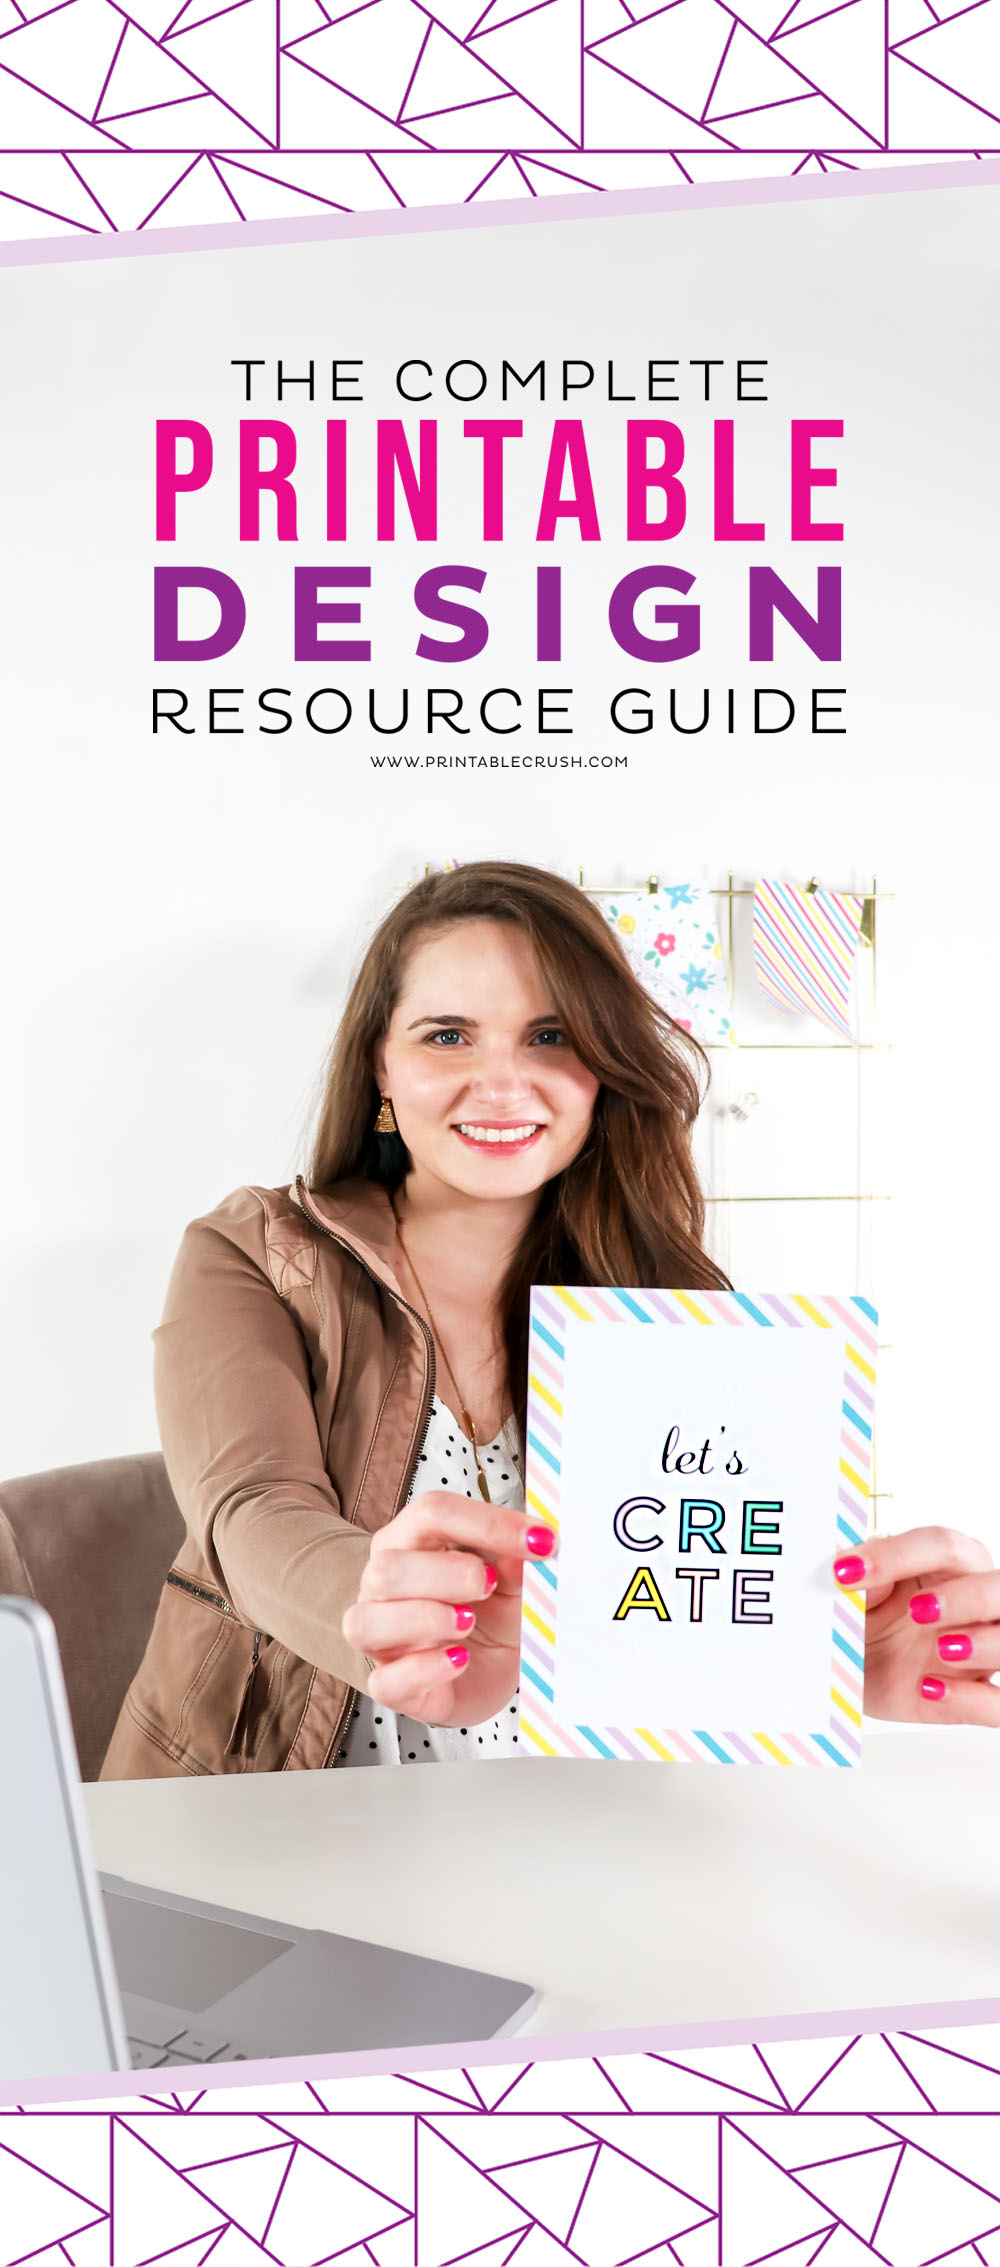 Ever want to create your own printables or digital files for your business? Check out this Complete Printable Design Resource Guide for all my helpful Printable links!